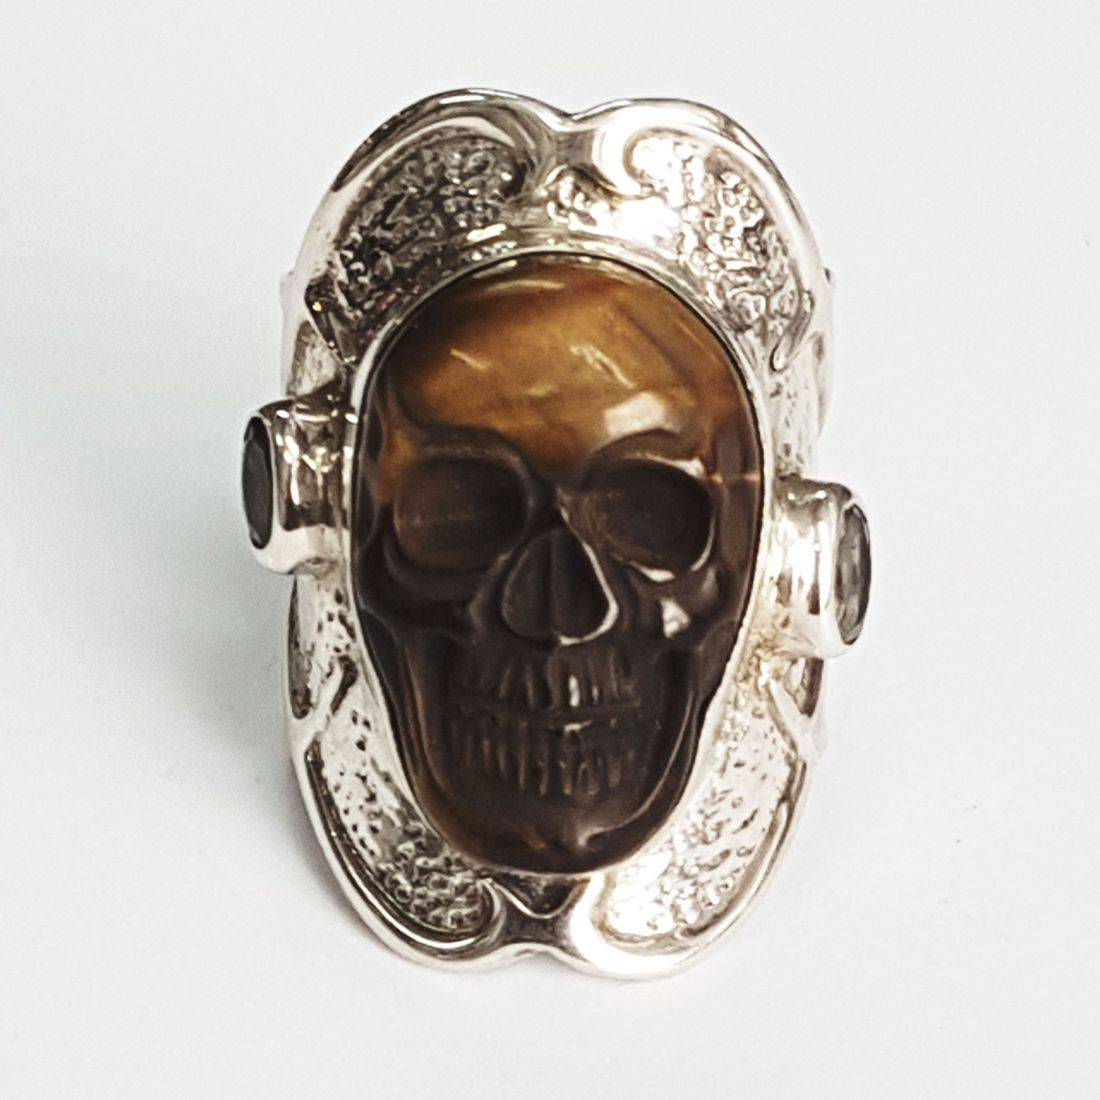 Tiger eye skull available at Kazbah online and our Leicester city centre shop